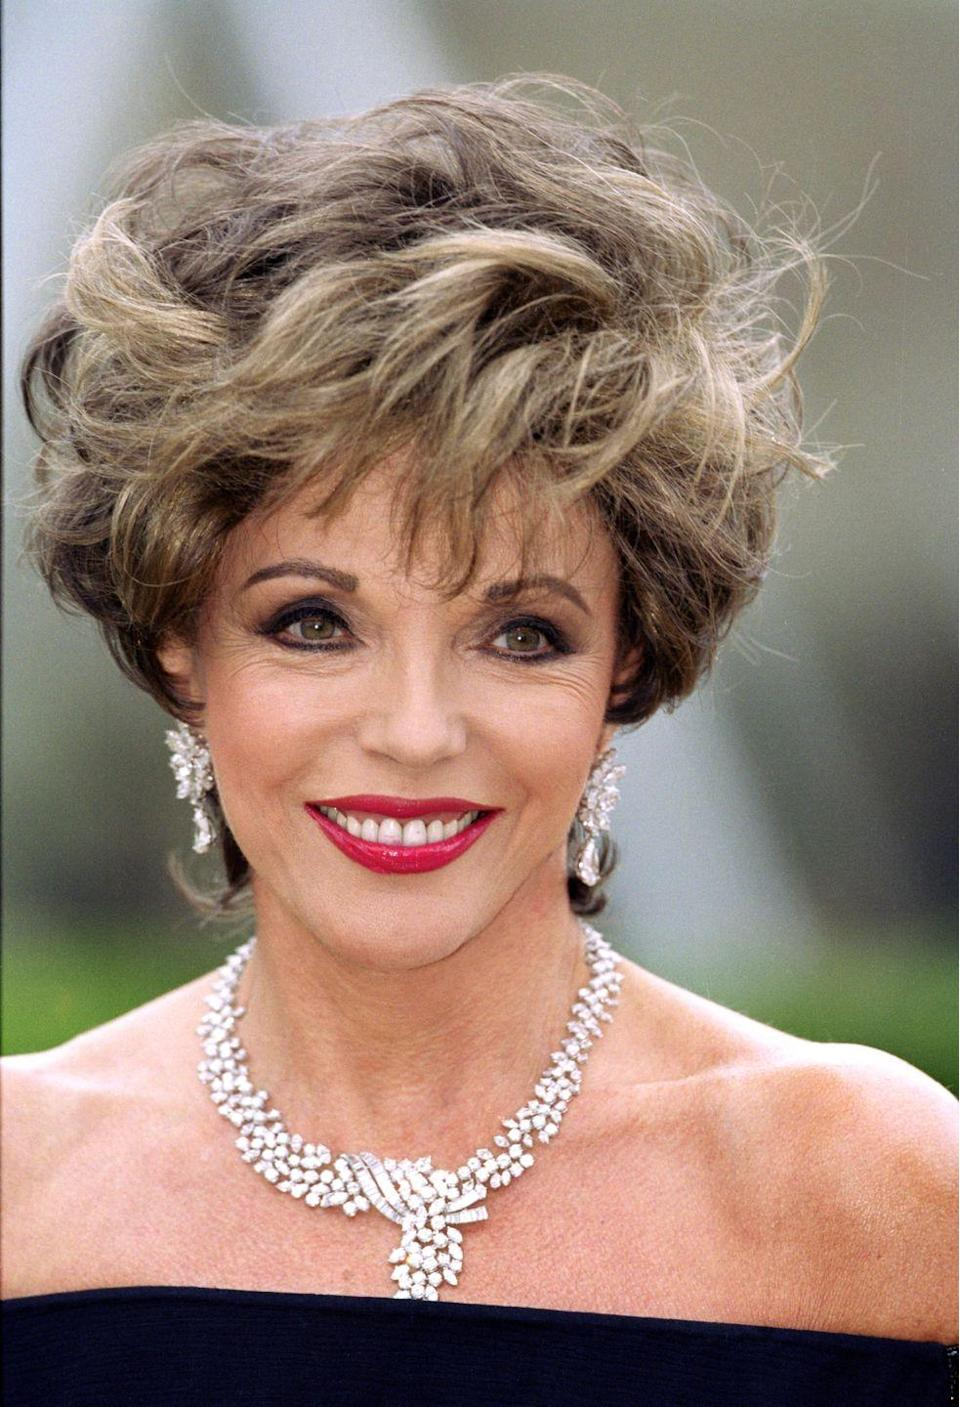 <p>Collins bought this sparkling necklace (with over 60 carats of brilliant, marquise and step-cut diamonds) in 1985 at the height of her fame as Alexis Carrington. She has since worn it to many glamorous events, including the Serpentine Gallery's 30th anniversary celebrations, and it is one of the most valuable pieces in the forthcoming auction at Bonhams, with an estimate of between £50,000 and £70,000. </p>